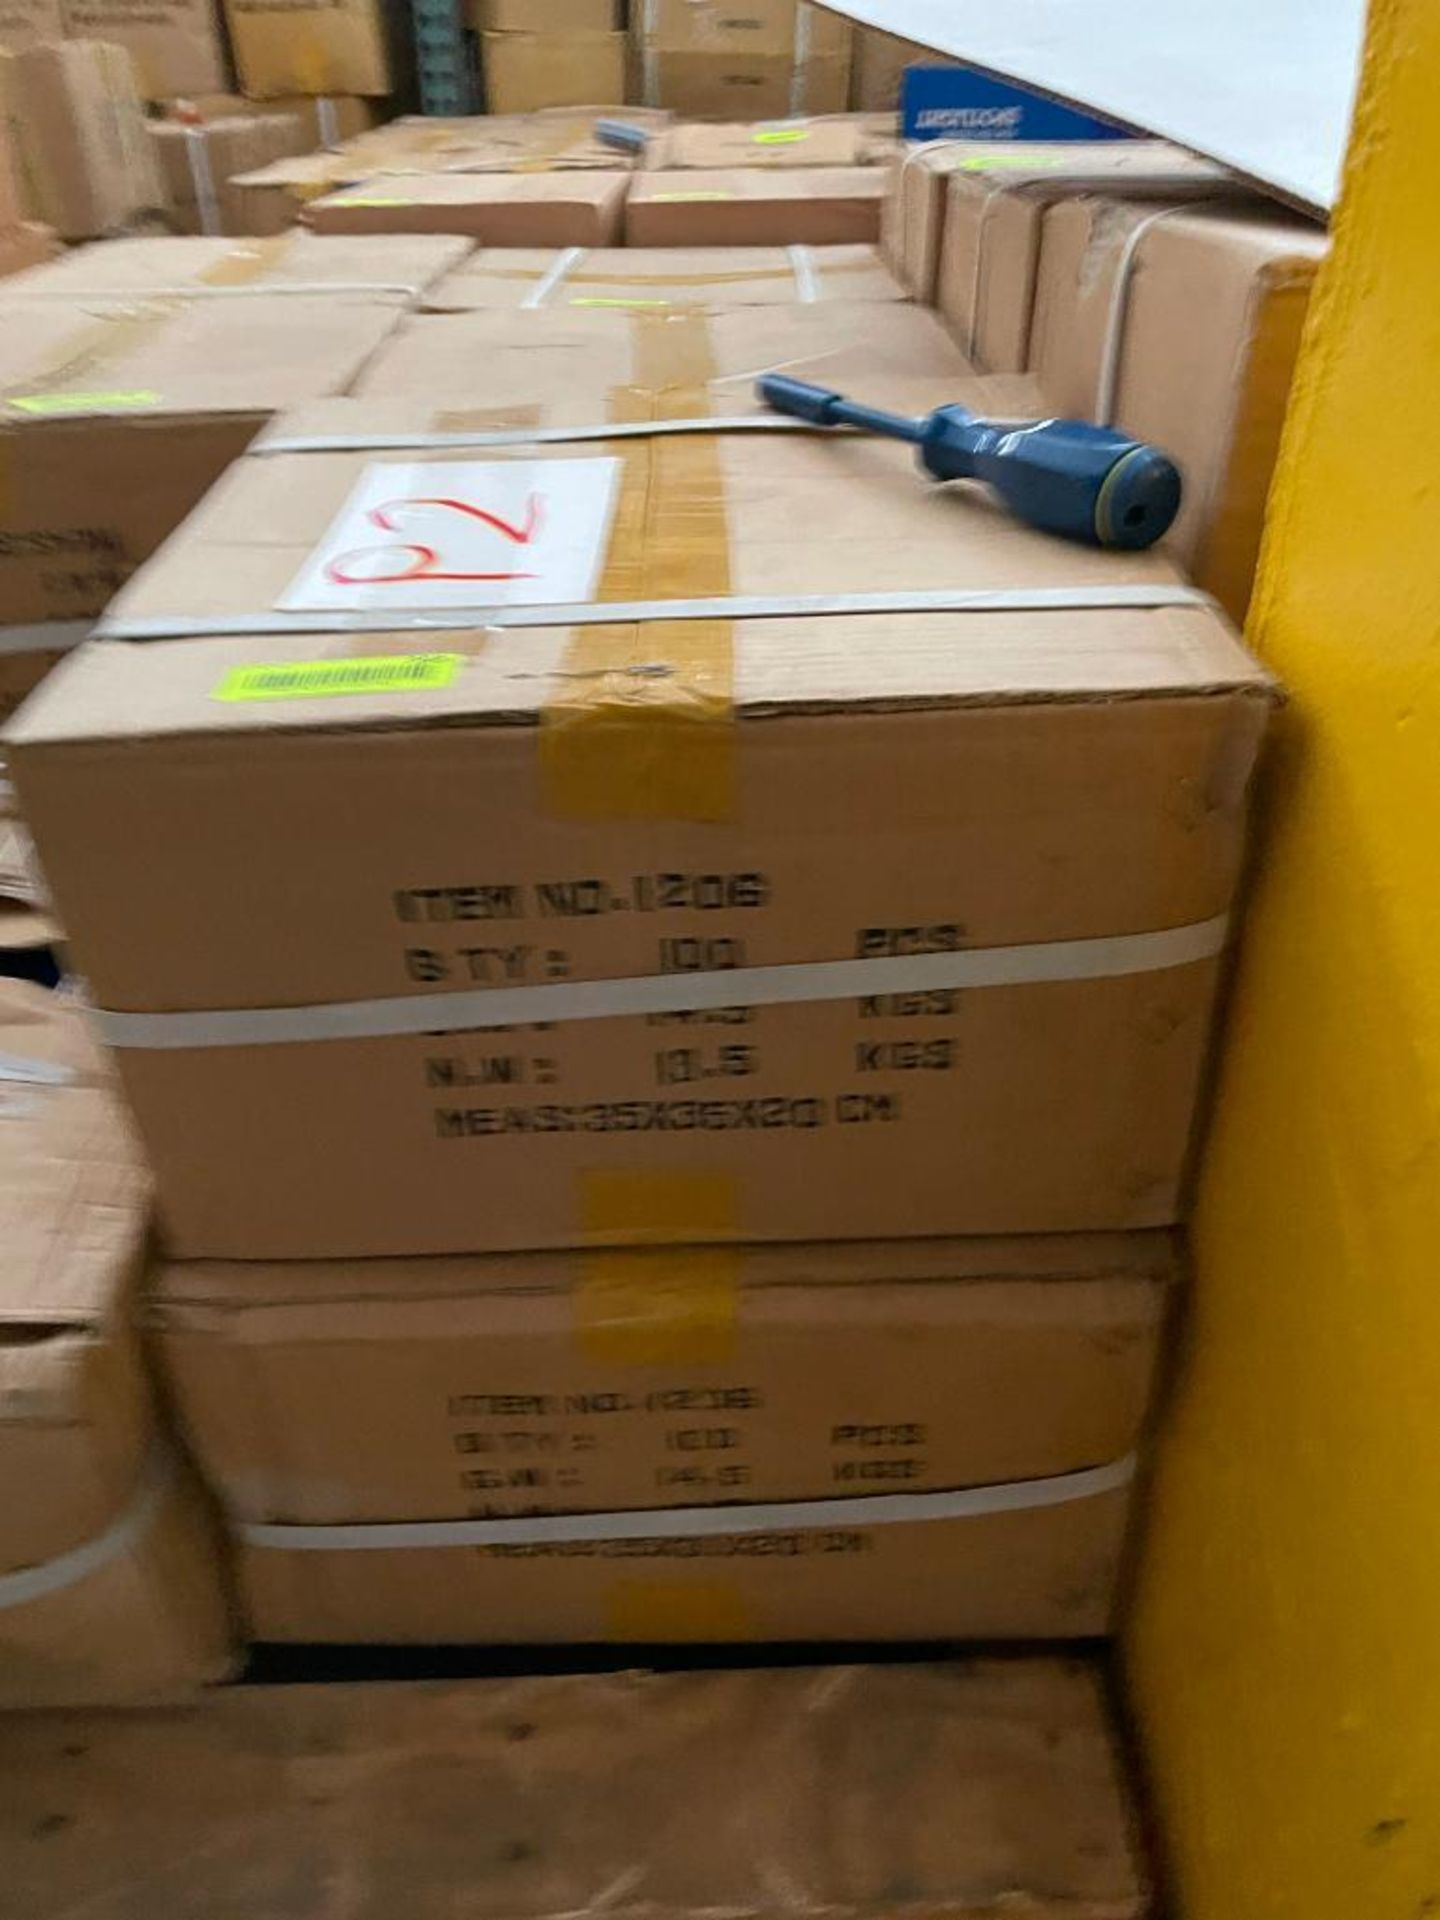 200CT STANDARD SCREWDRIVERS BRAND/MODEL EAZYPOWER 1206 ADDITIONAL INFO (2) 100CT BOXES THIS LOT IS S - Image 2 of 3